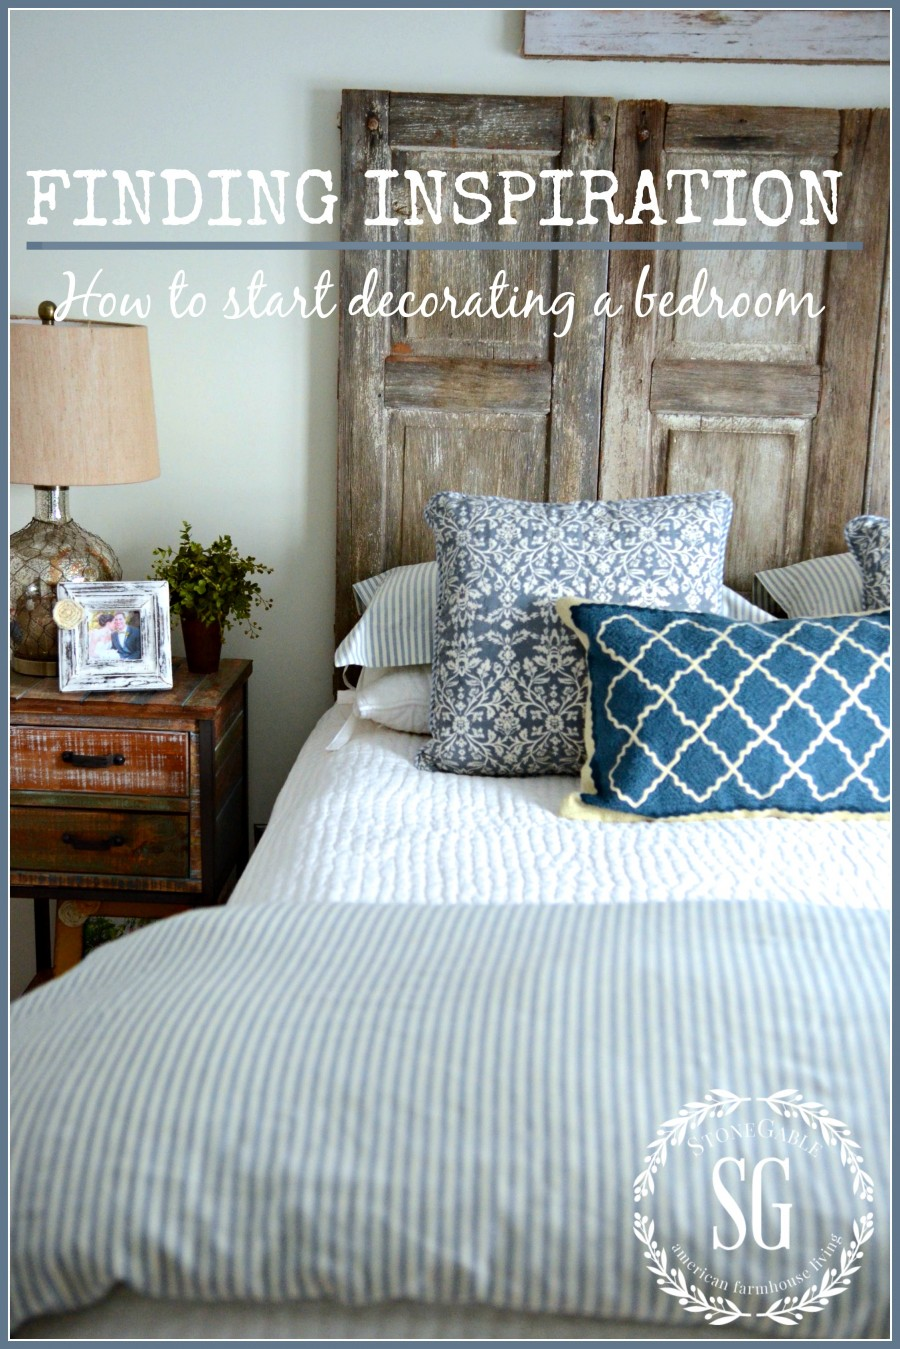 ... INSPIRATION-how to start decorating a bedroom-stonegableblog.com